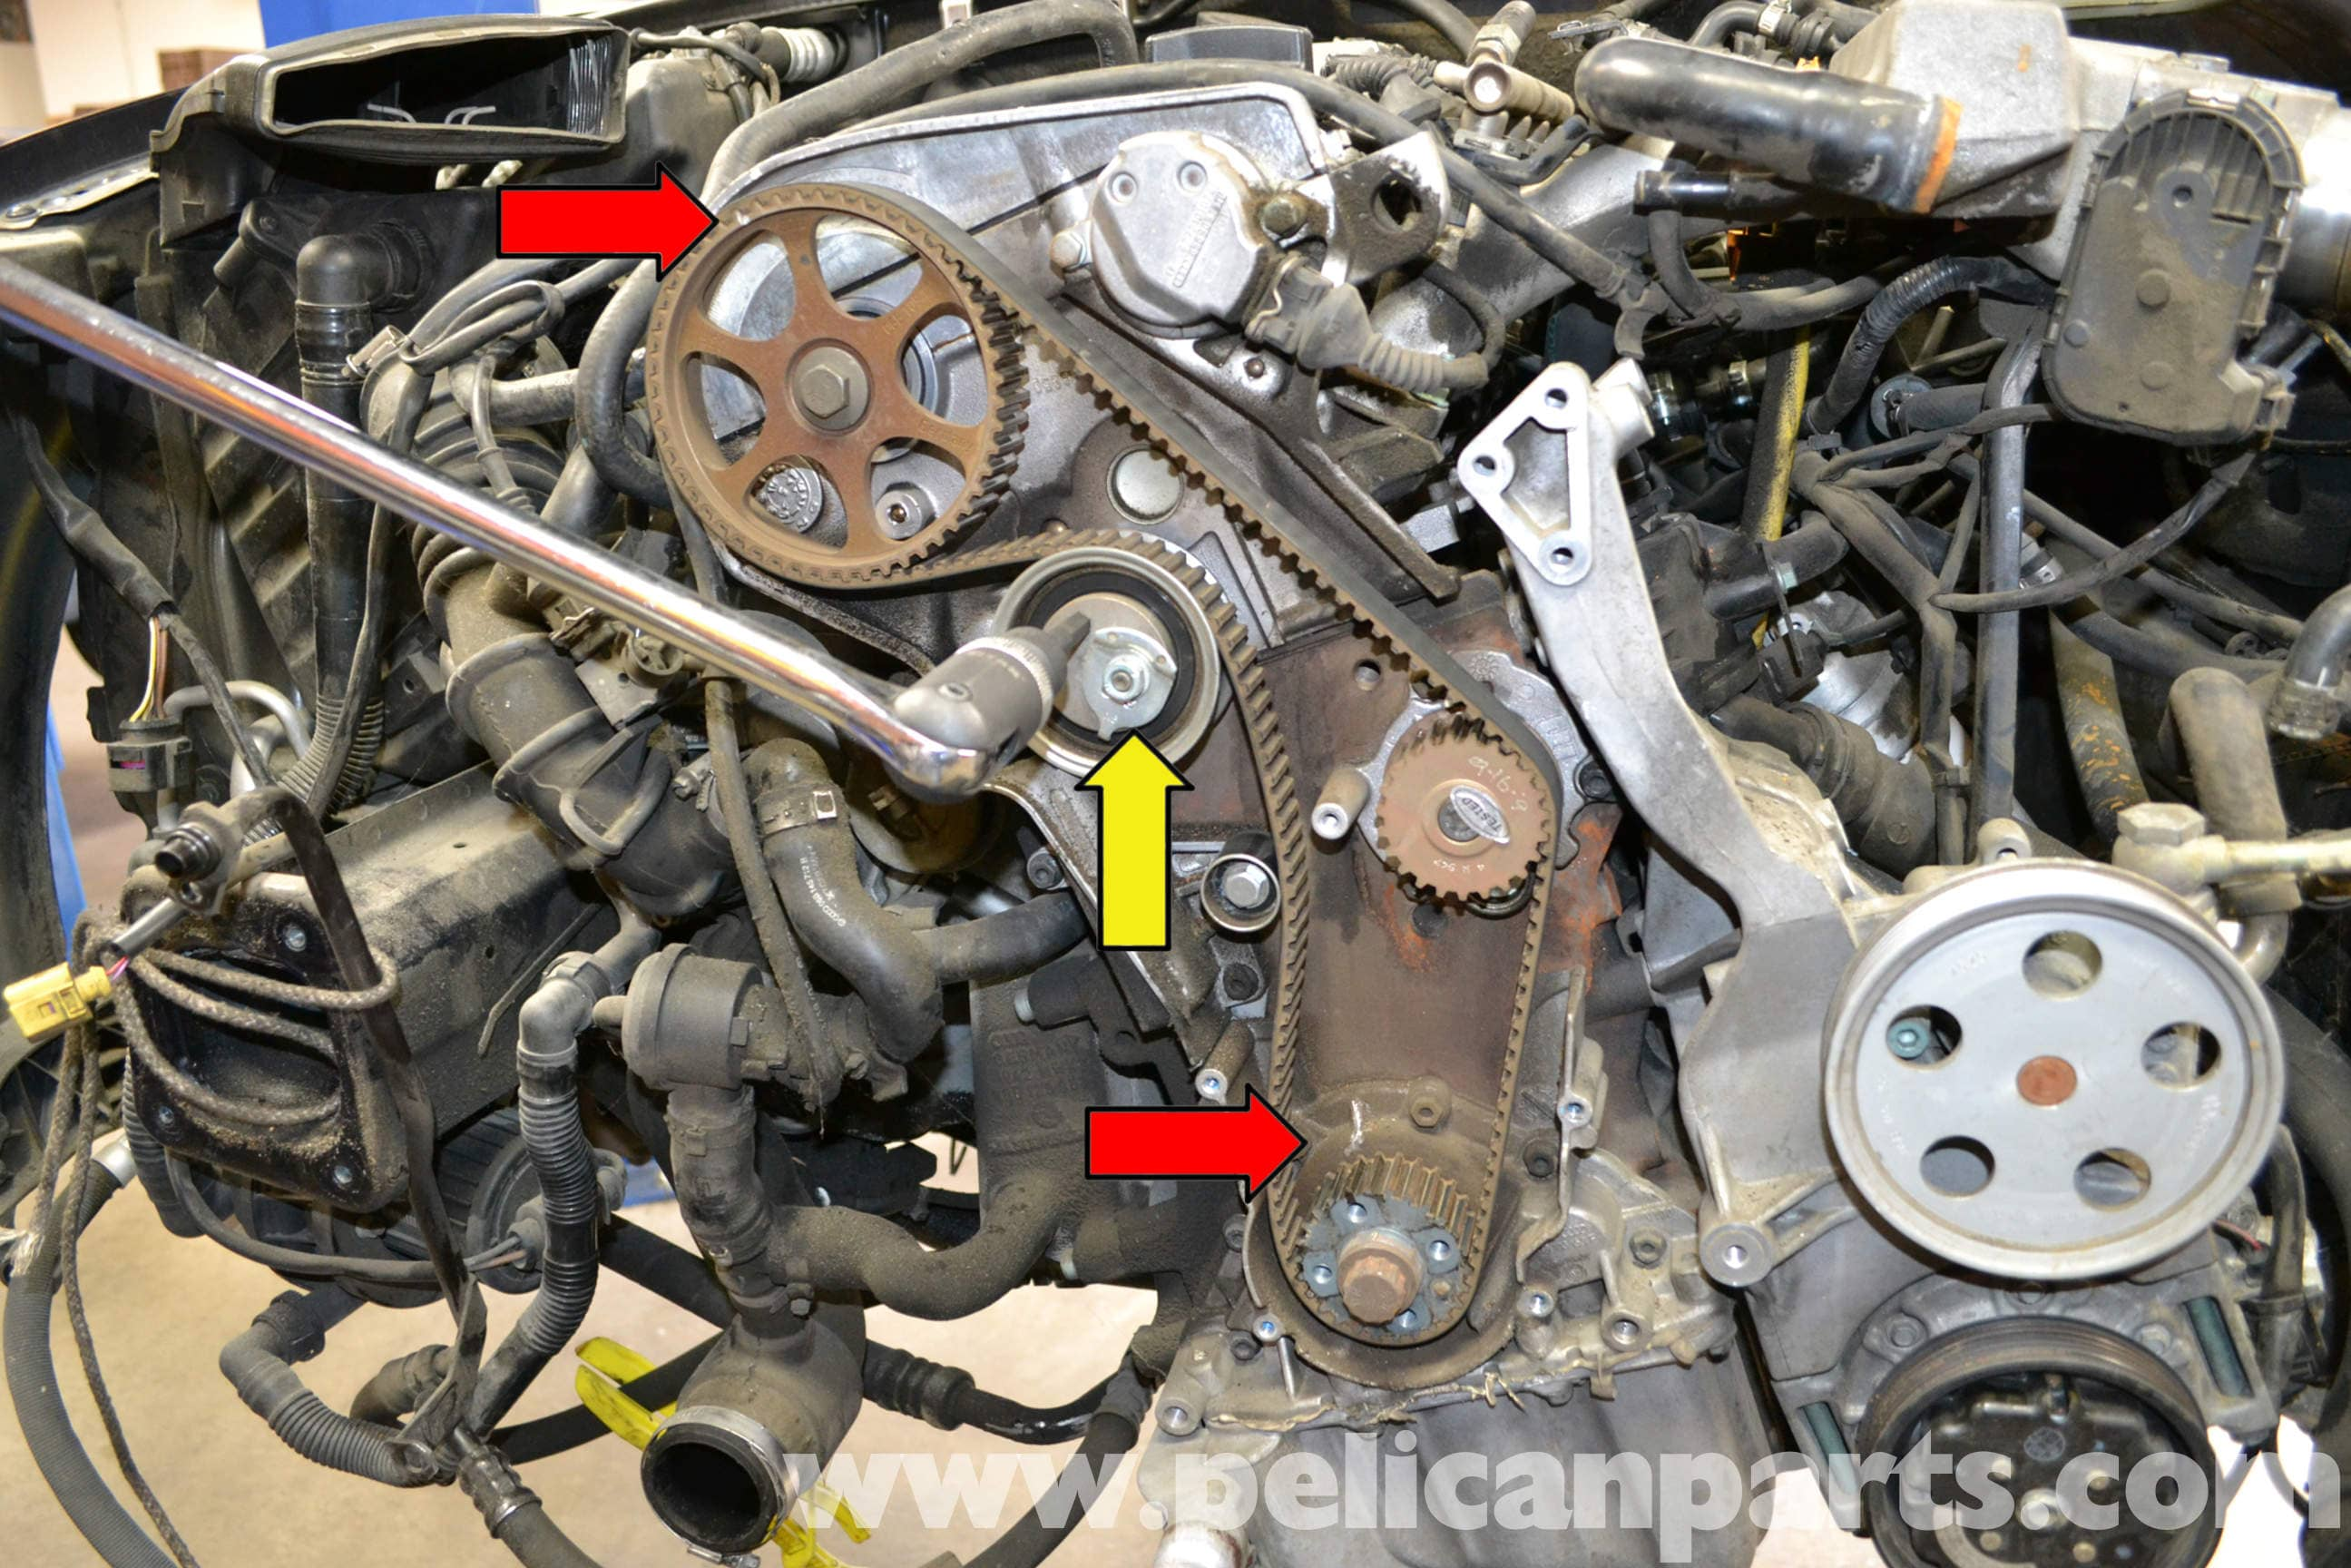 Audi A4 B6 Head Gasket Replacement 1 8t 2002 2008 Pelican Parts Diy Maintenance Article